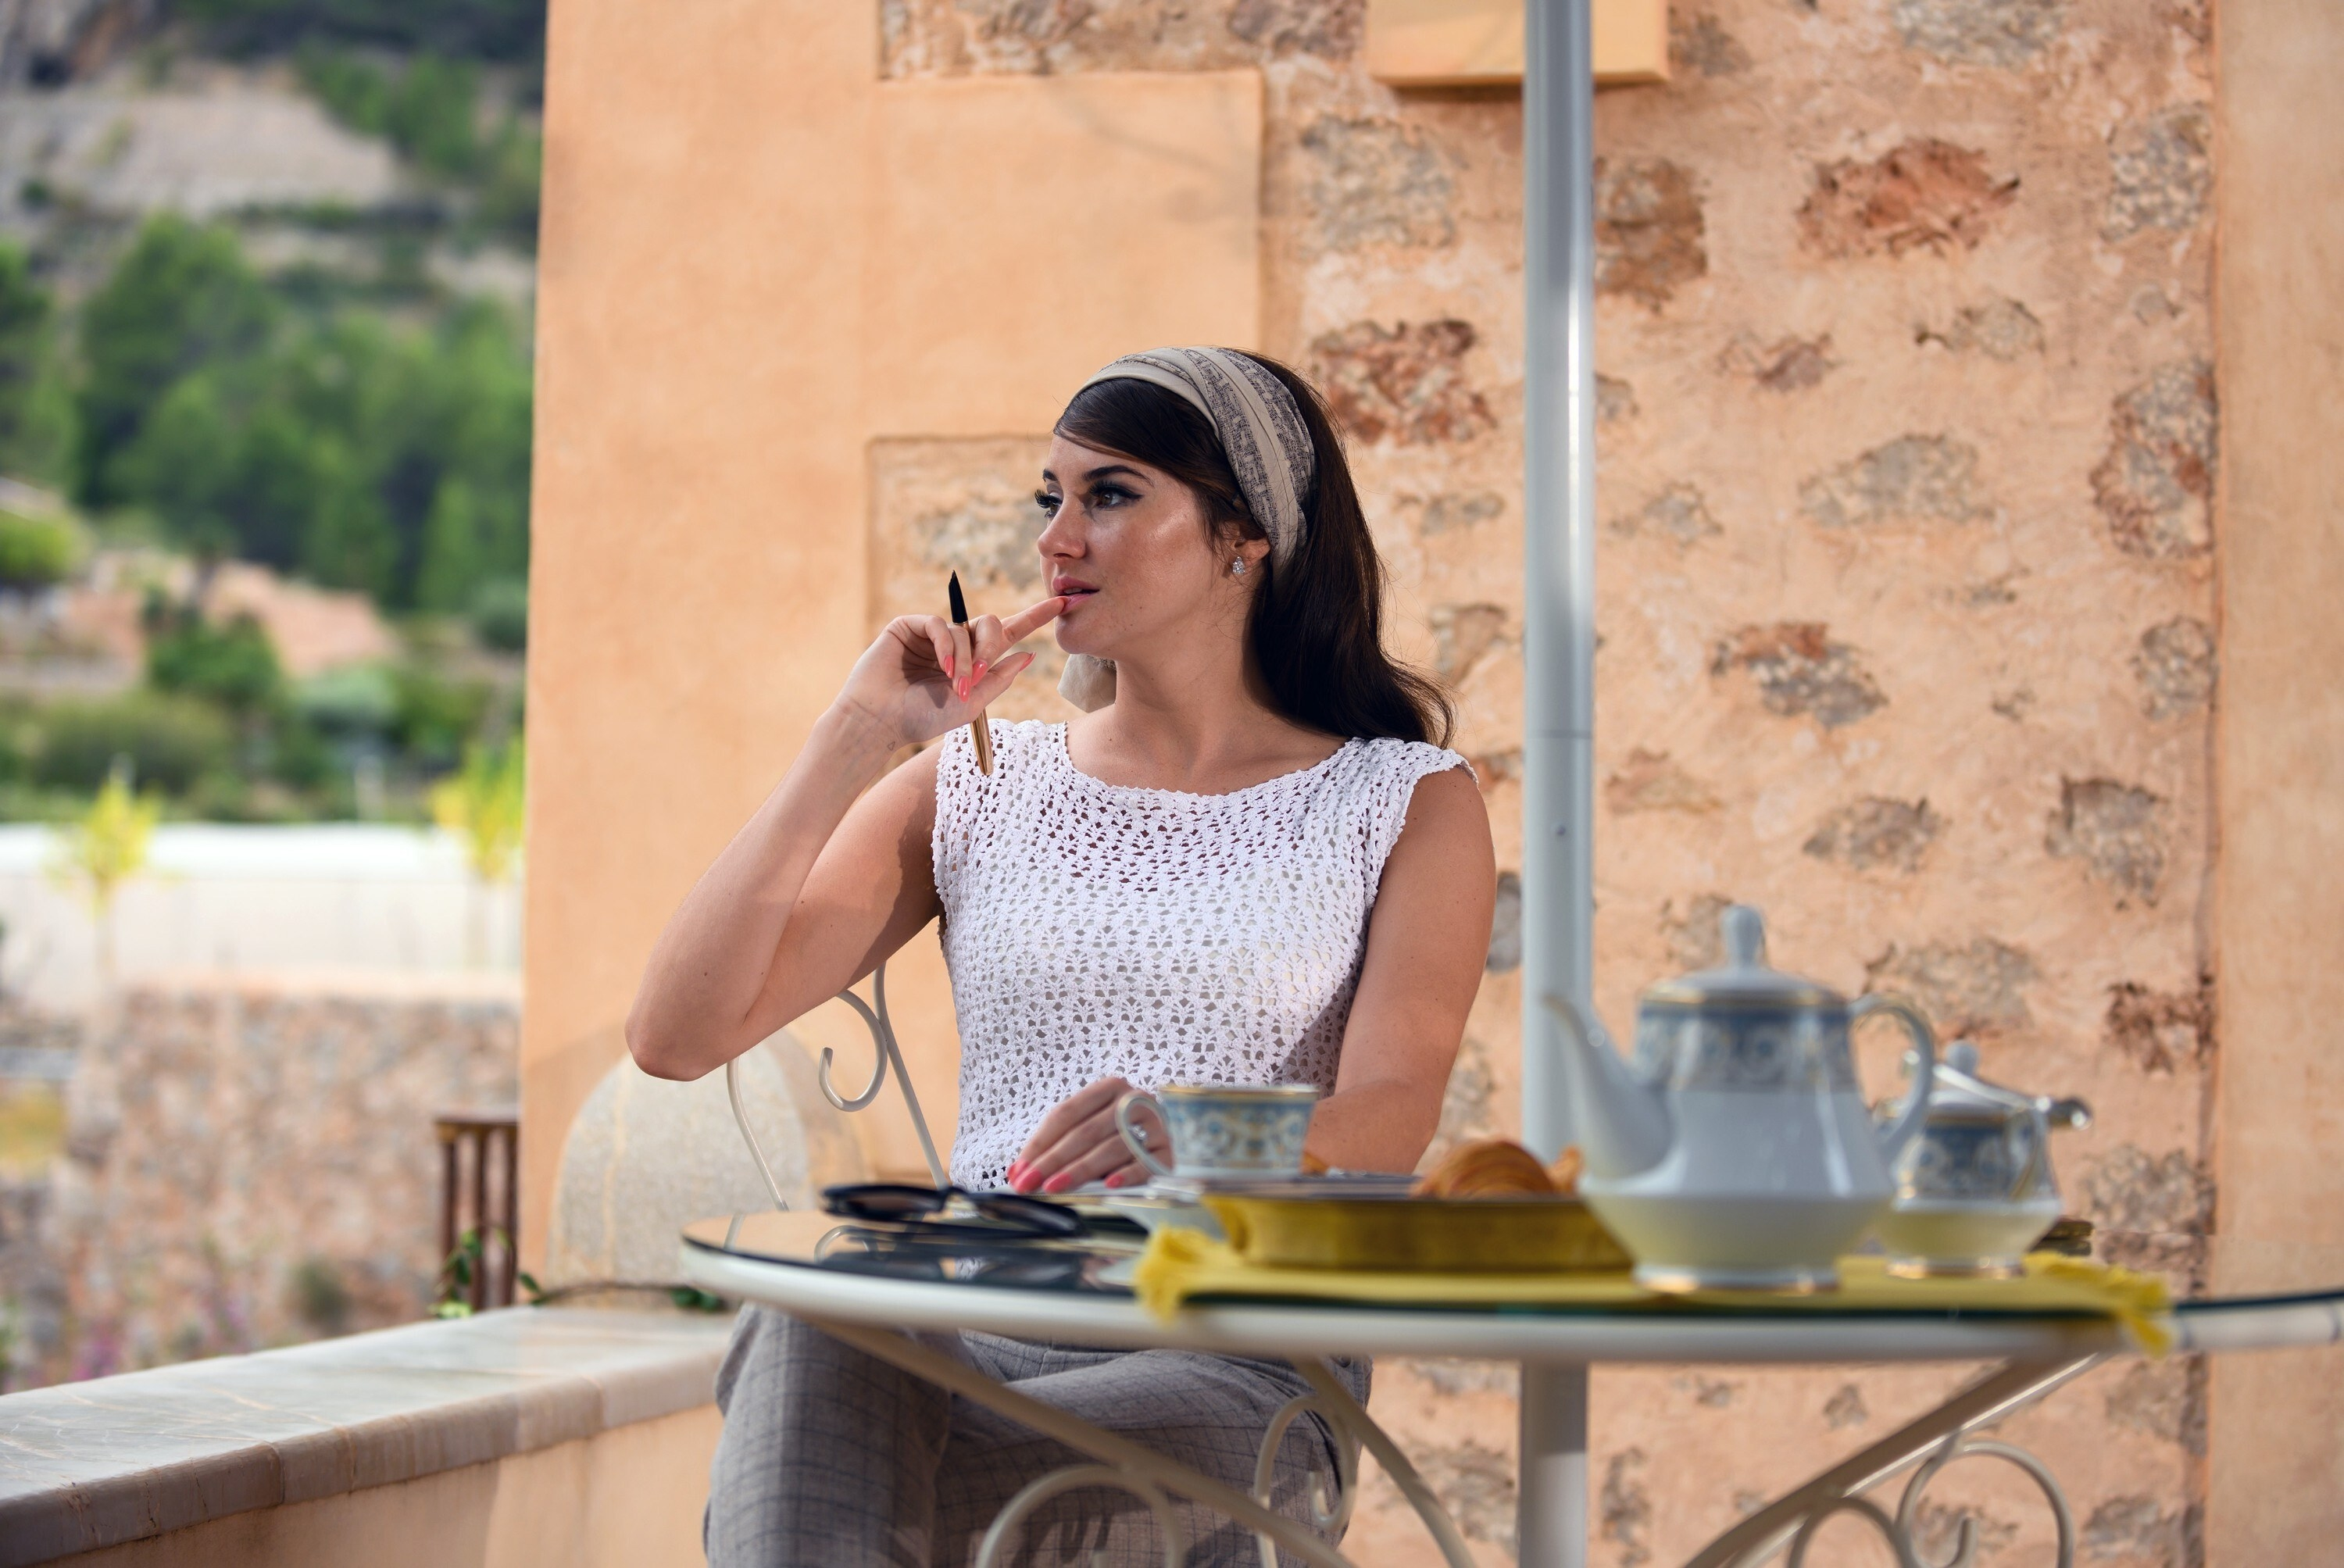 Jennifer at an outdoor table with tea, holding a pen and touching her mouth lost in thought